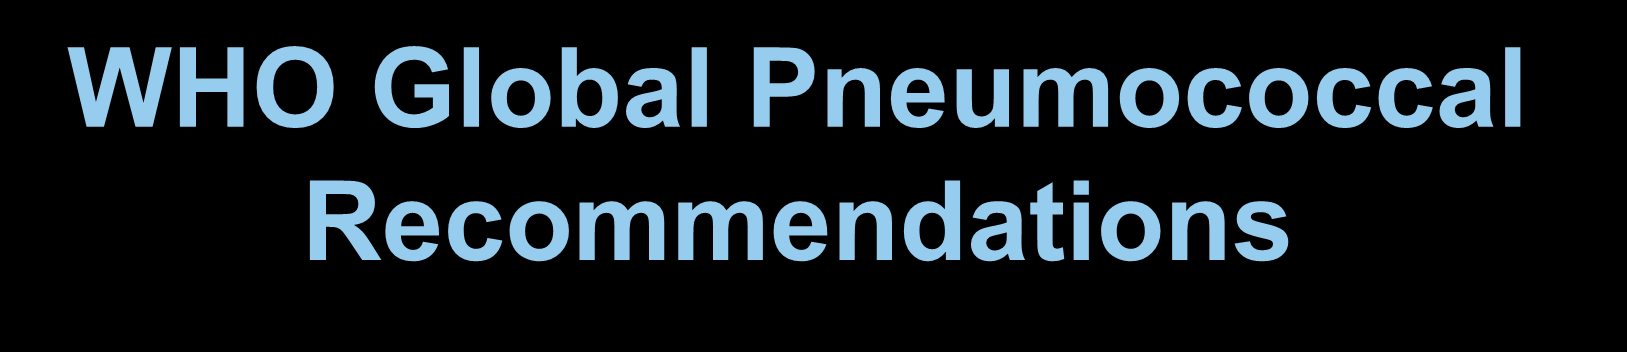 WHO Global Pneumococcal Recommendations The WHO Recommendations were based in part on the following: US Experience after Pneumococcal Vaccine Introduction (PCV-7) given only to infants/children <2